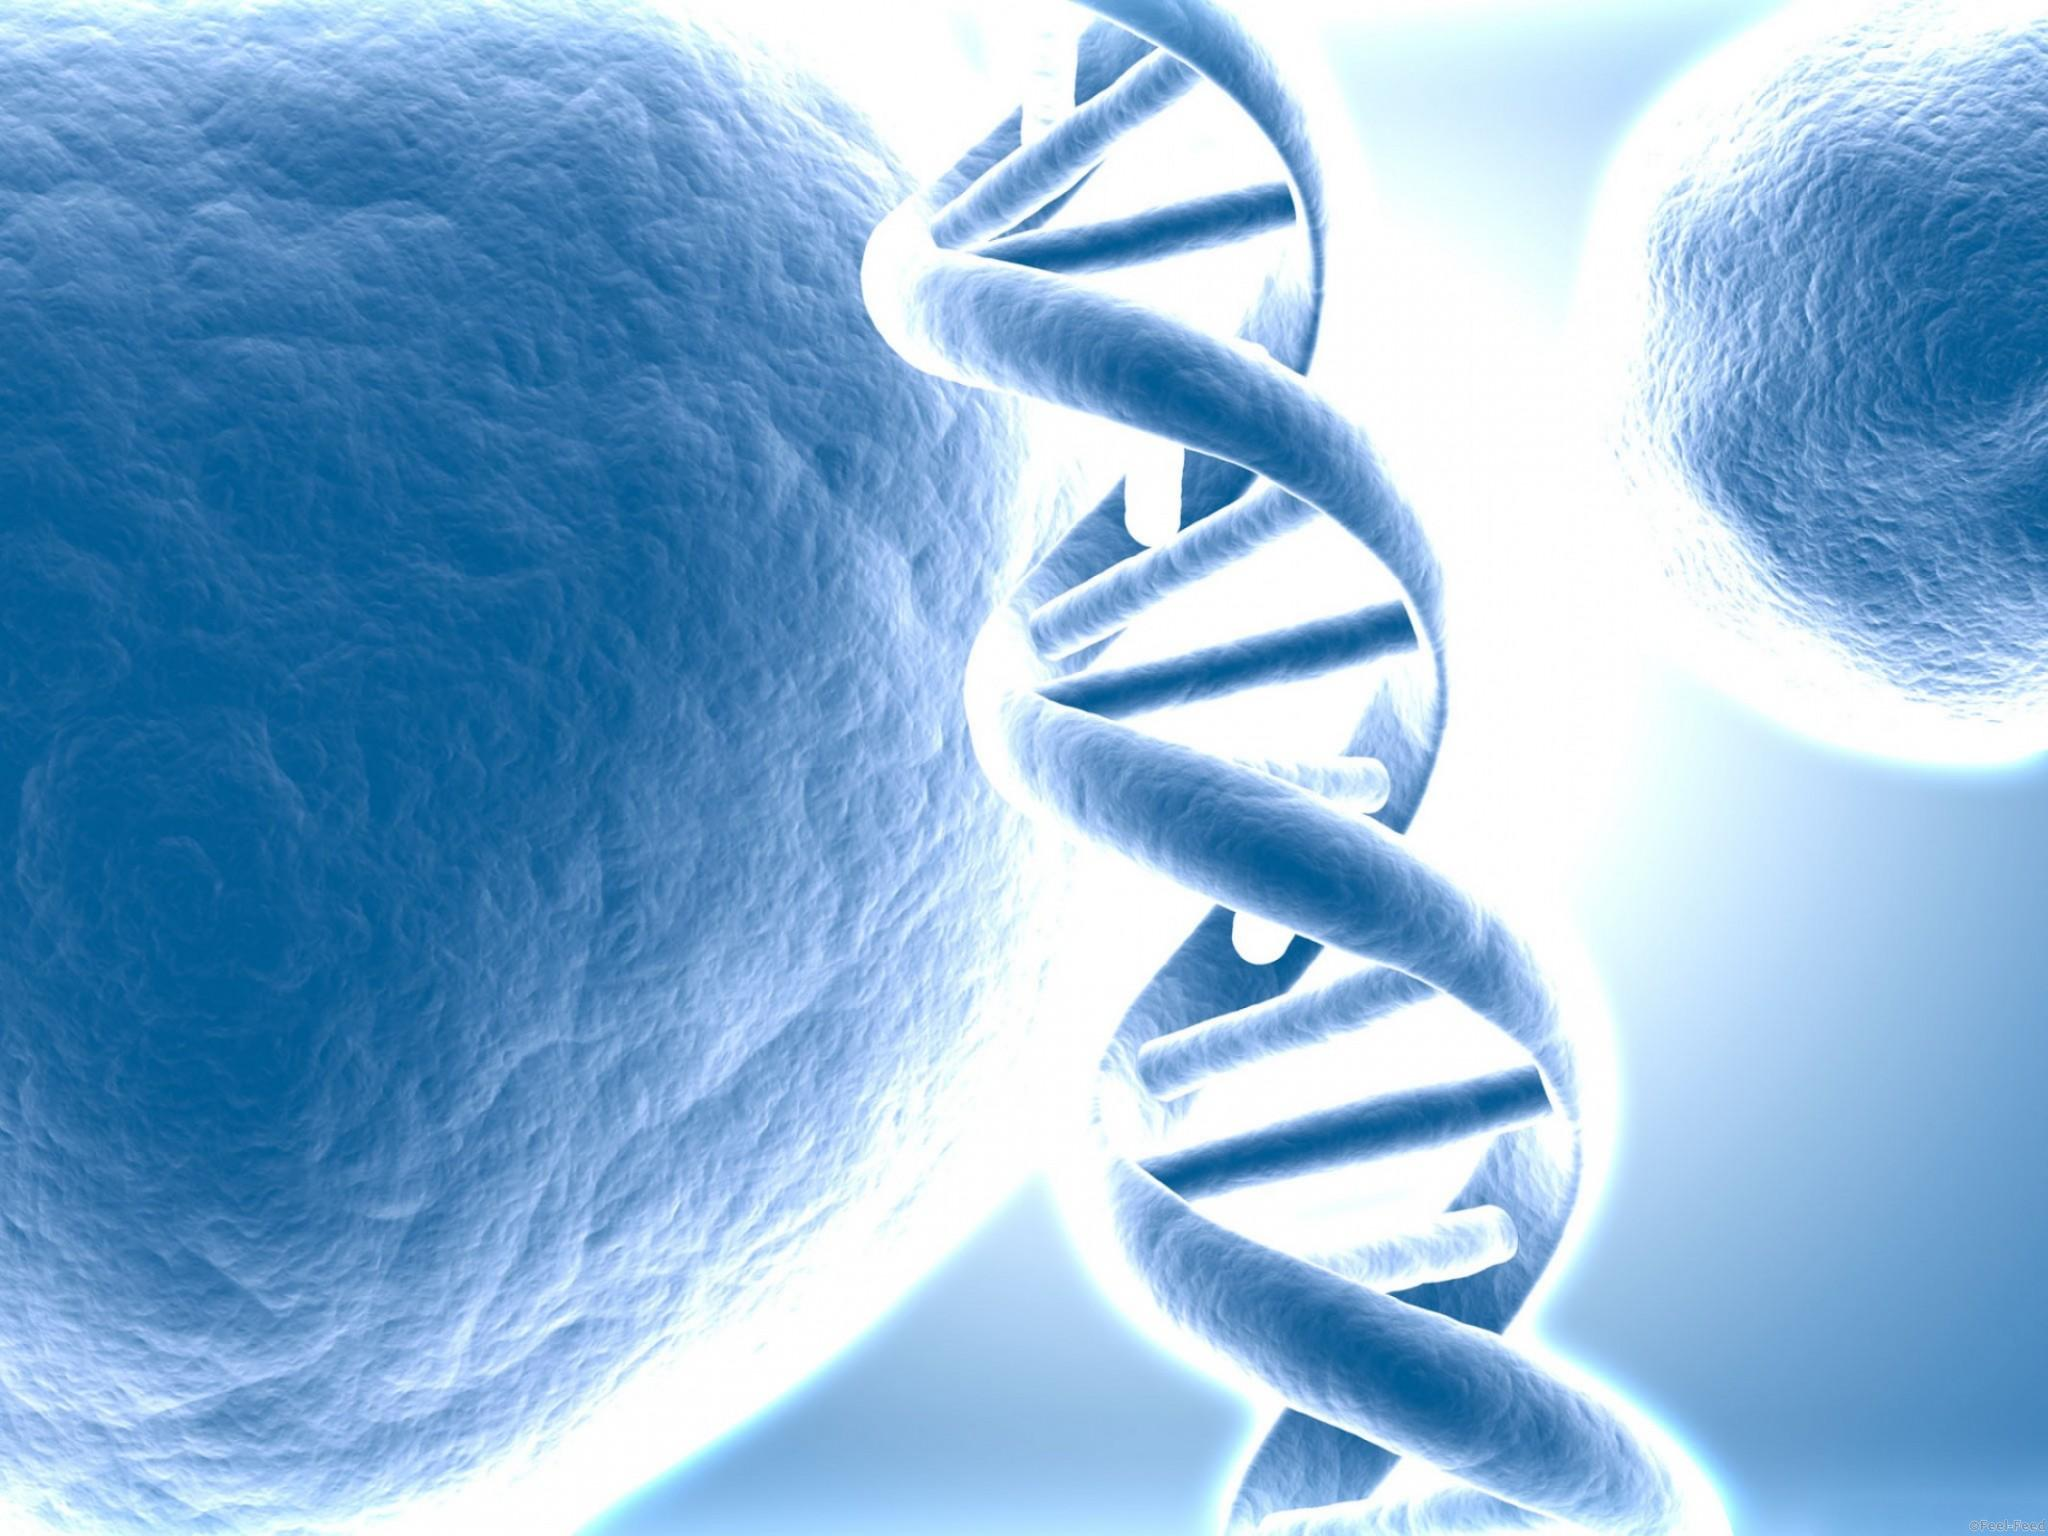 dna_represented_tridimensional_resized_2560x1600-w